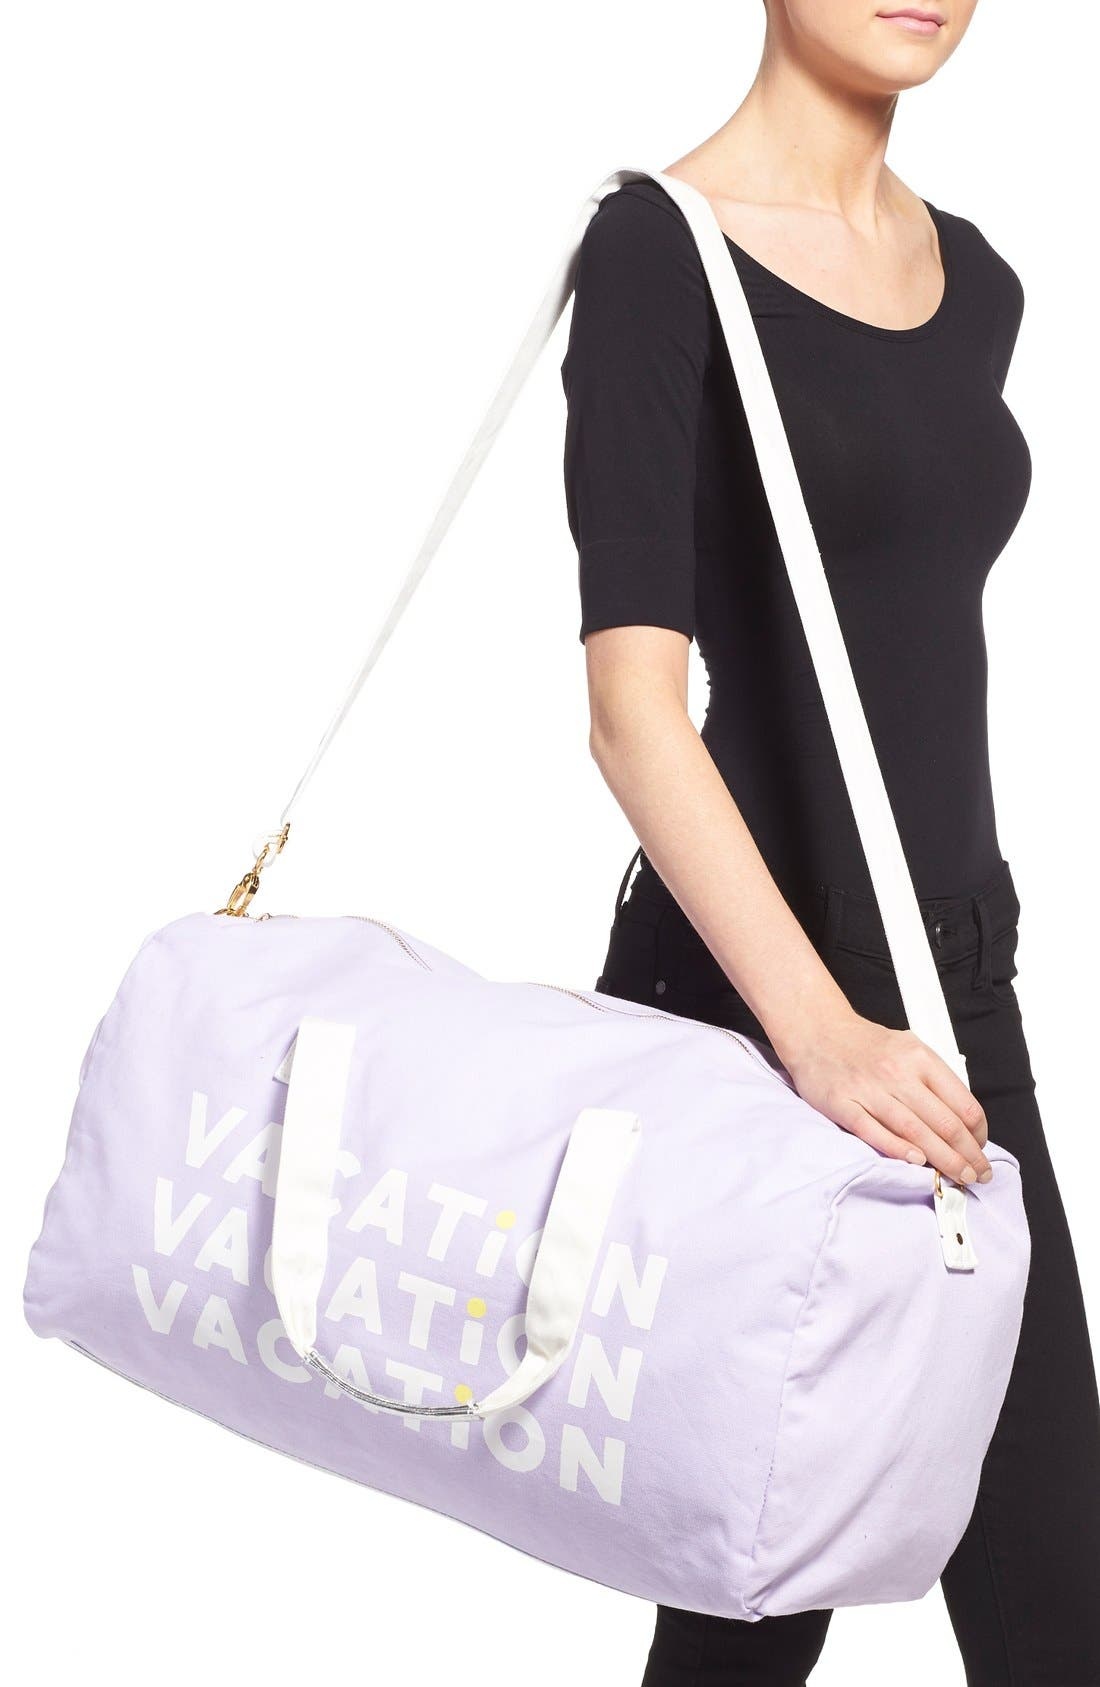 'Vacation Vacation Vacation' Canvas Duffel,                             Alternate thumbnail 2, color,                             Purple